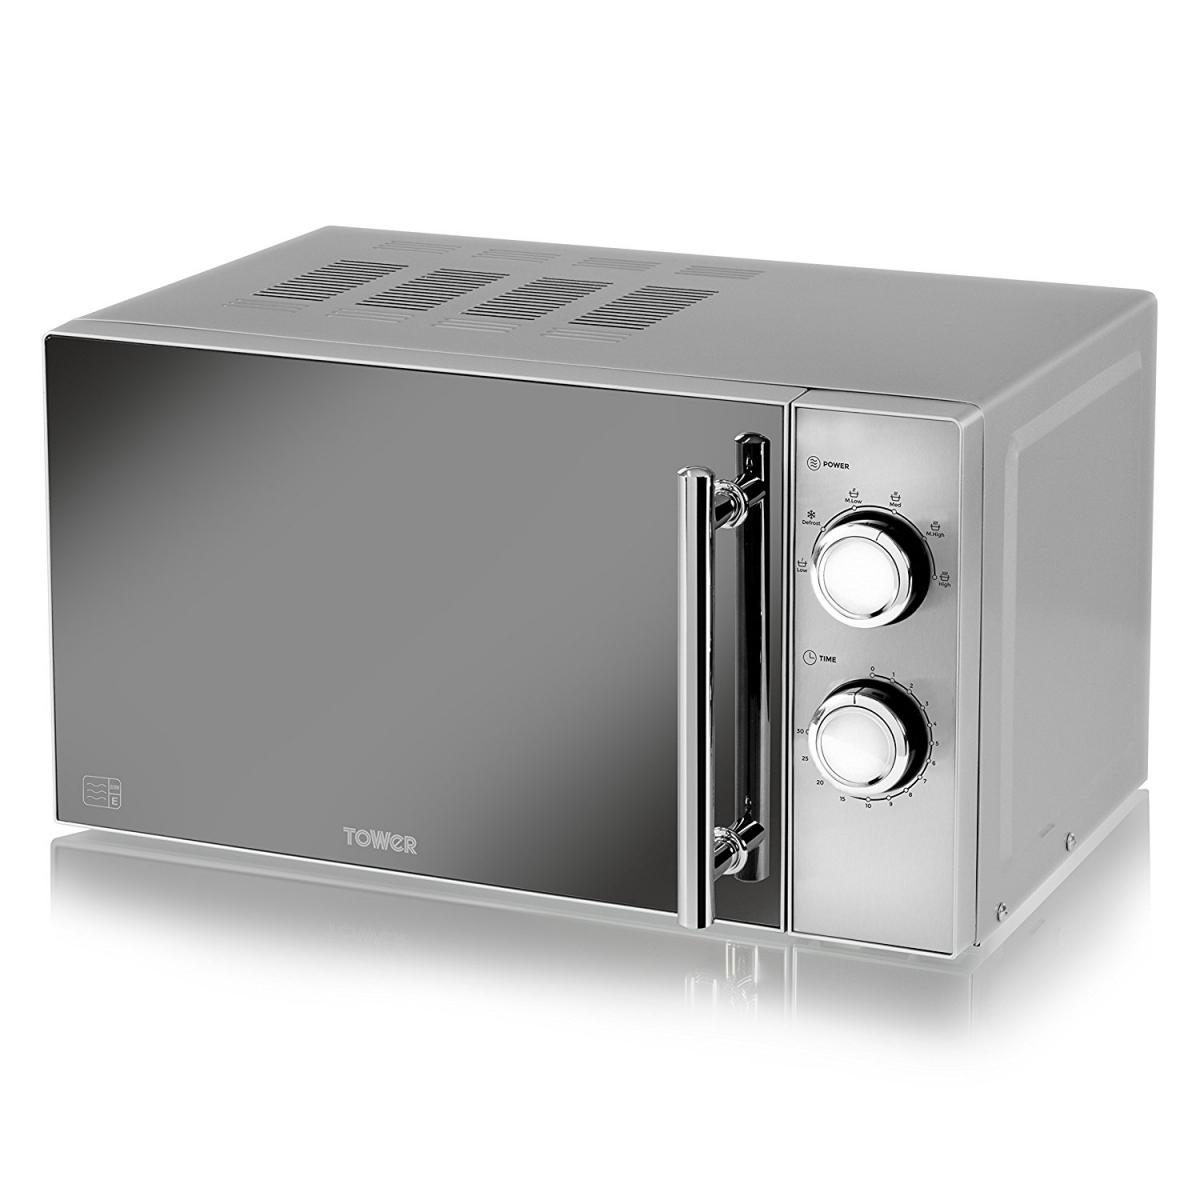 800W Microwave with Mirror Door - Silver – Now Only £69.00